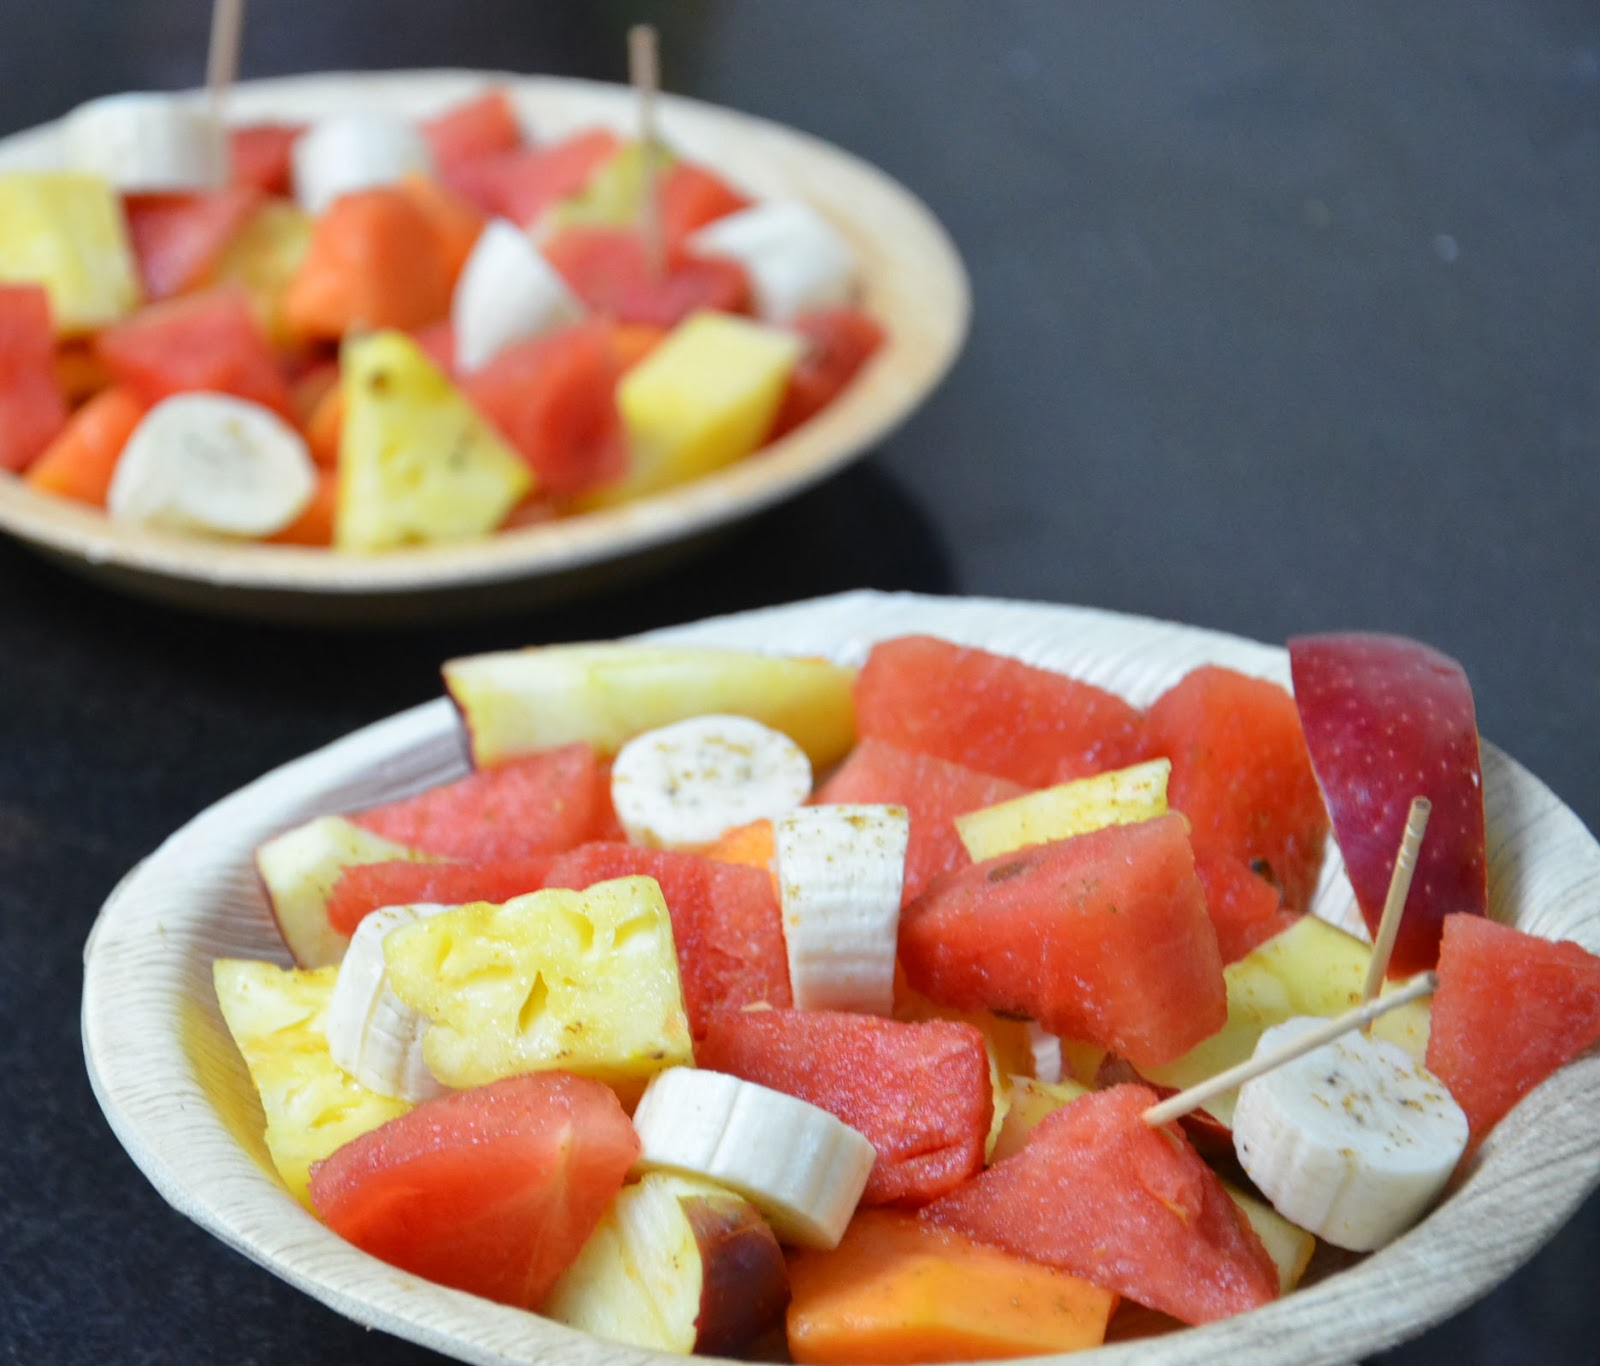 http://susrecipes.blogspot.in/2014/02/fruit-chaat-chandini-chowk-wala.html